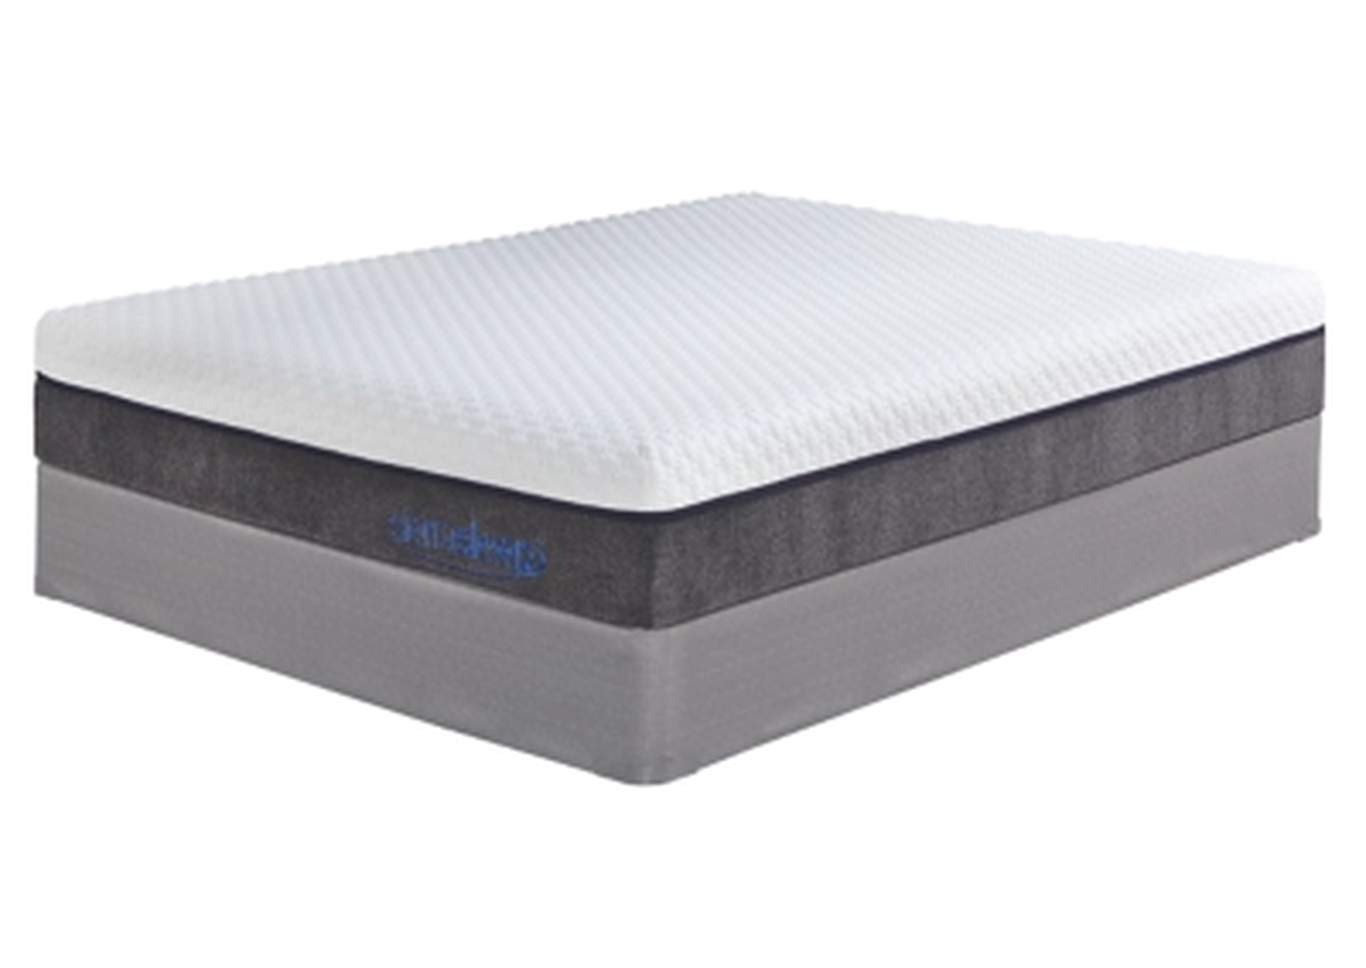 Mygel Hybrid 1100 Twin Mattress,Sierra Sleep